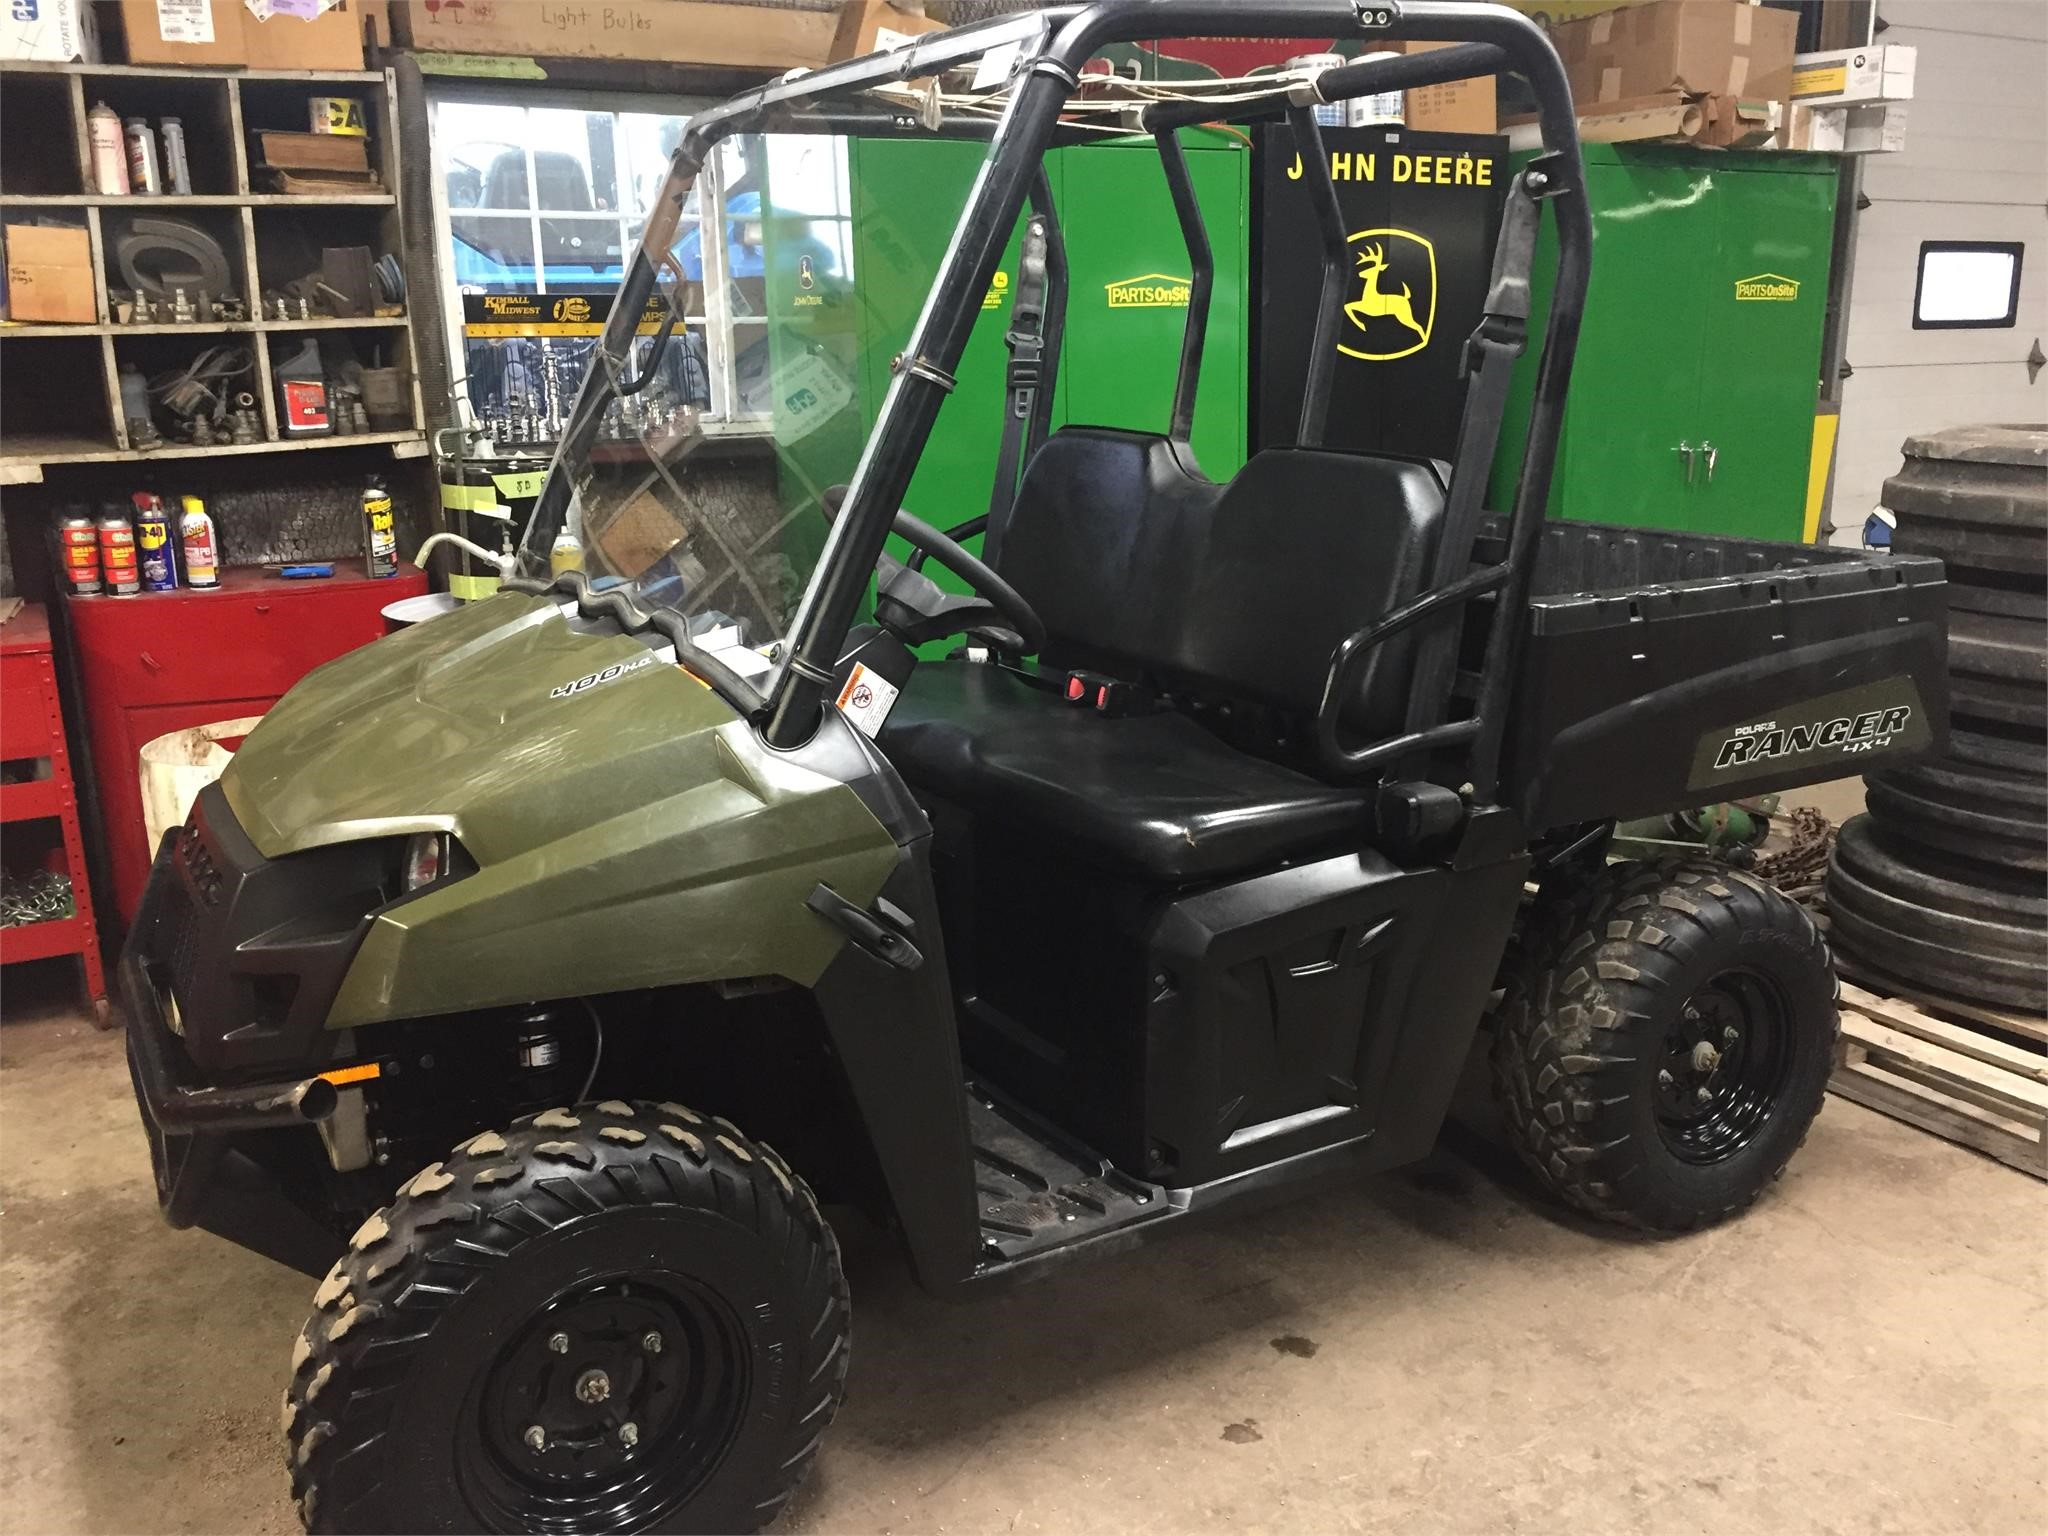 2006 POLARIS RANGER 400 For Sale in Thorntown, Indiana